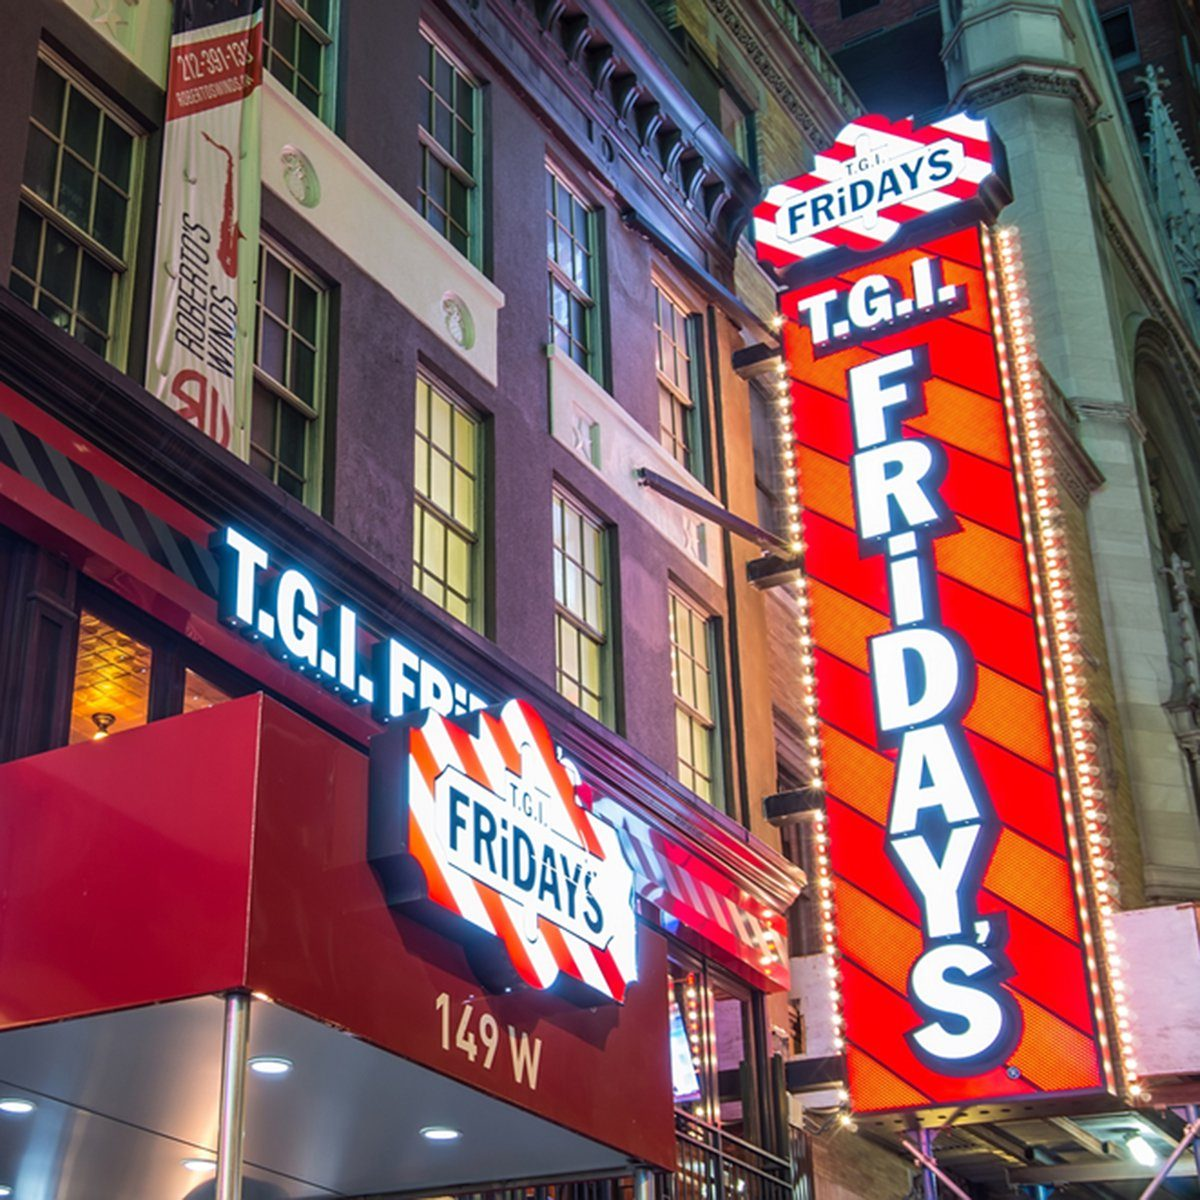 T.G.I's Friday neon sign in Manhattan.